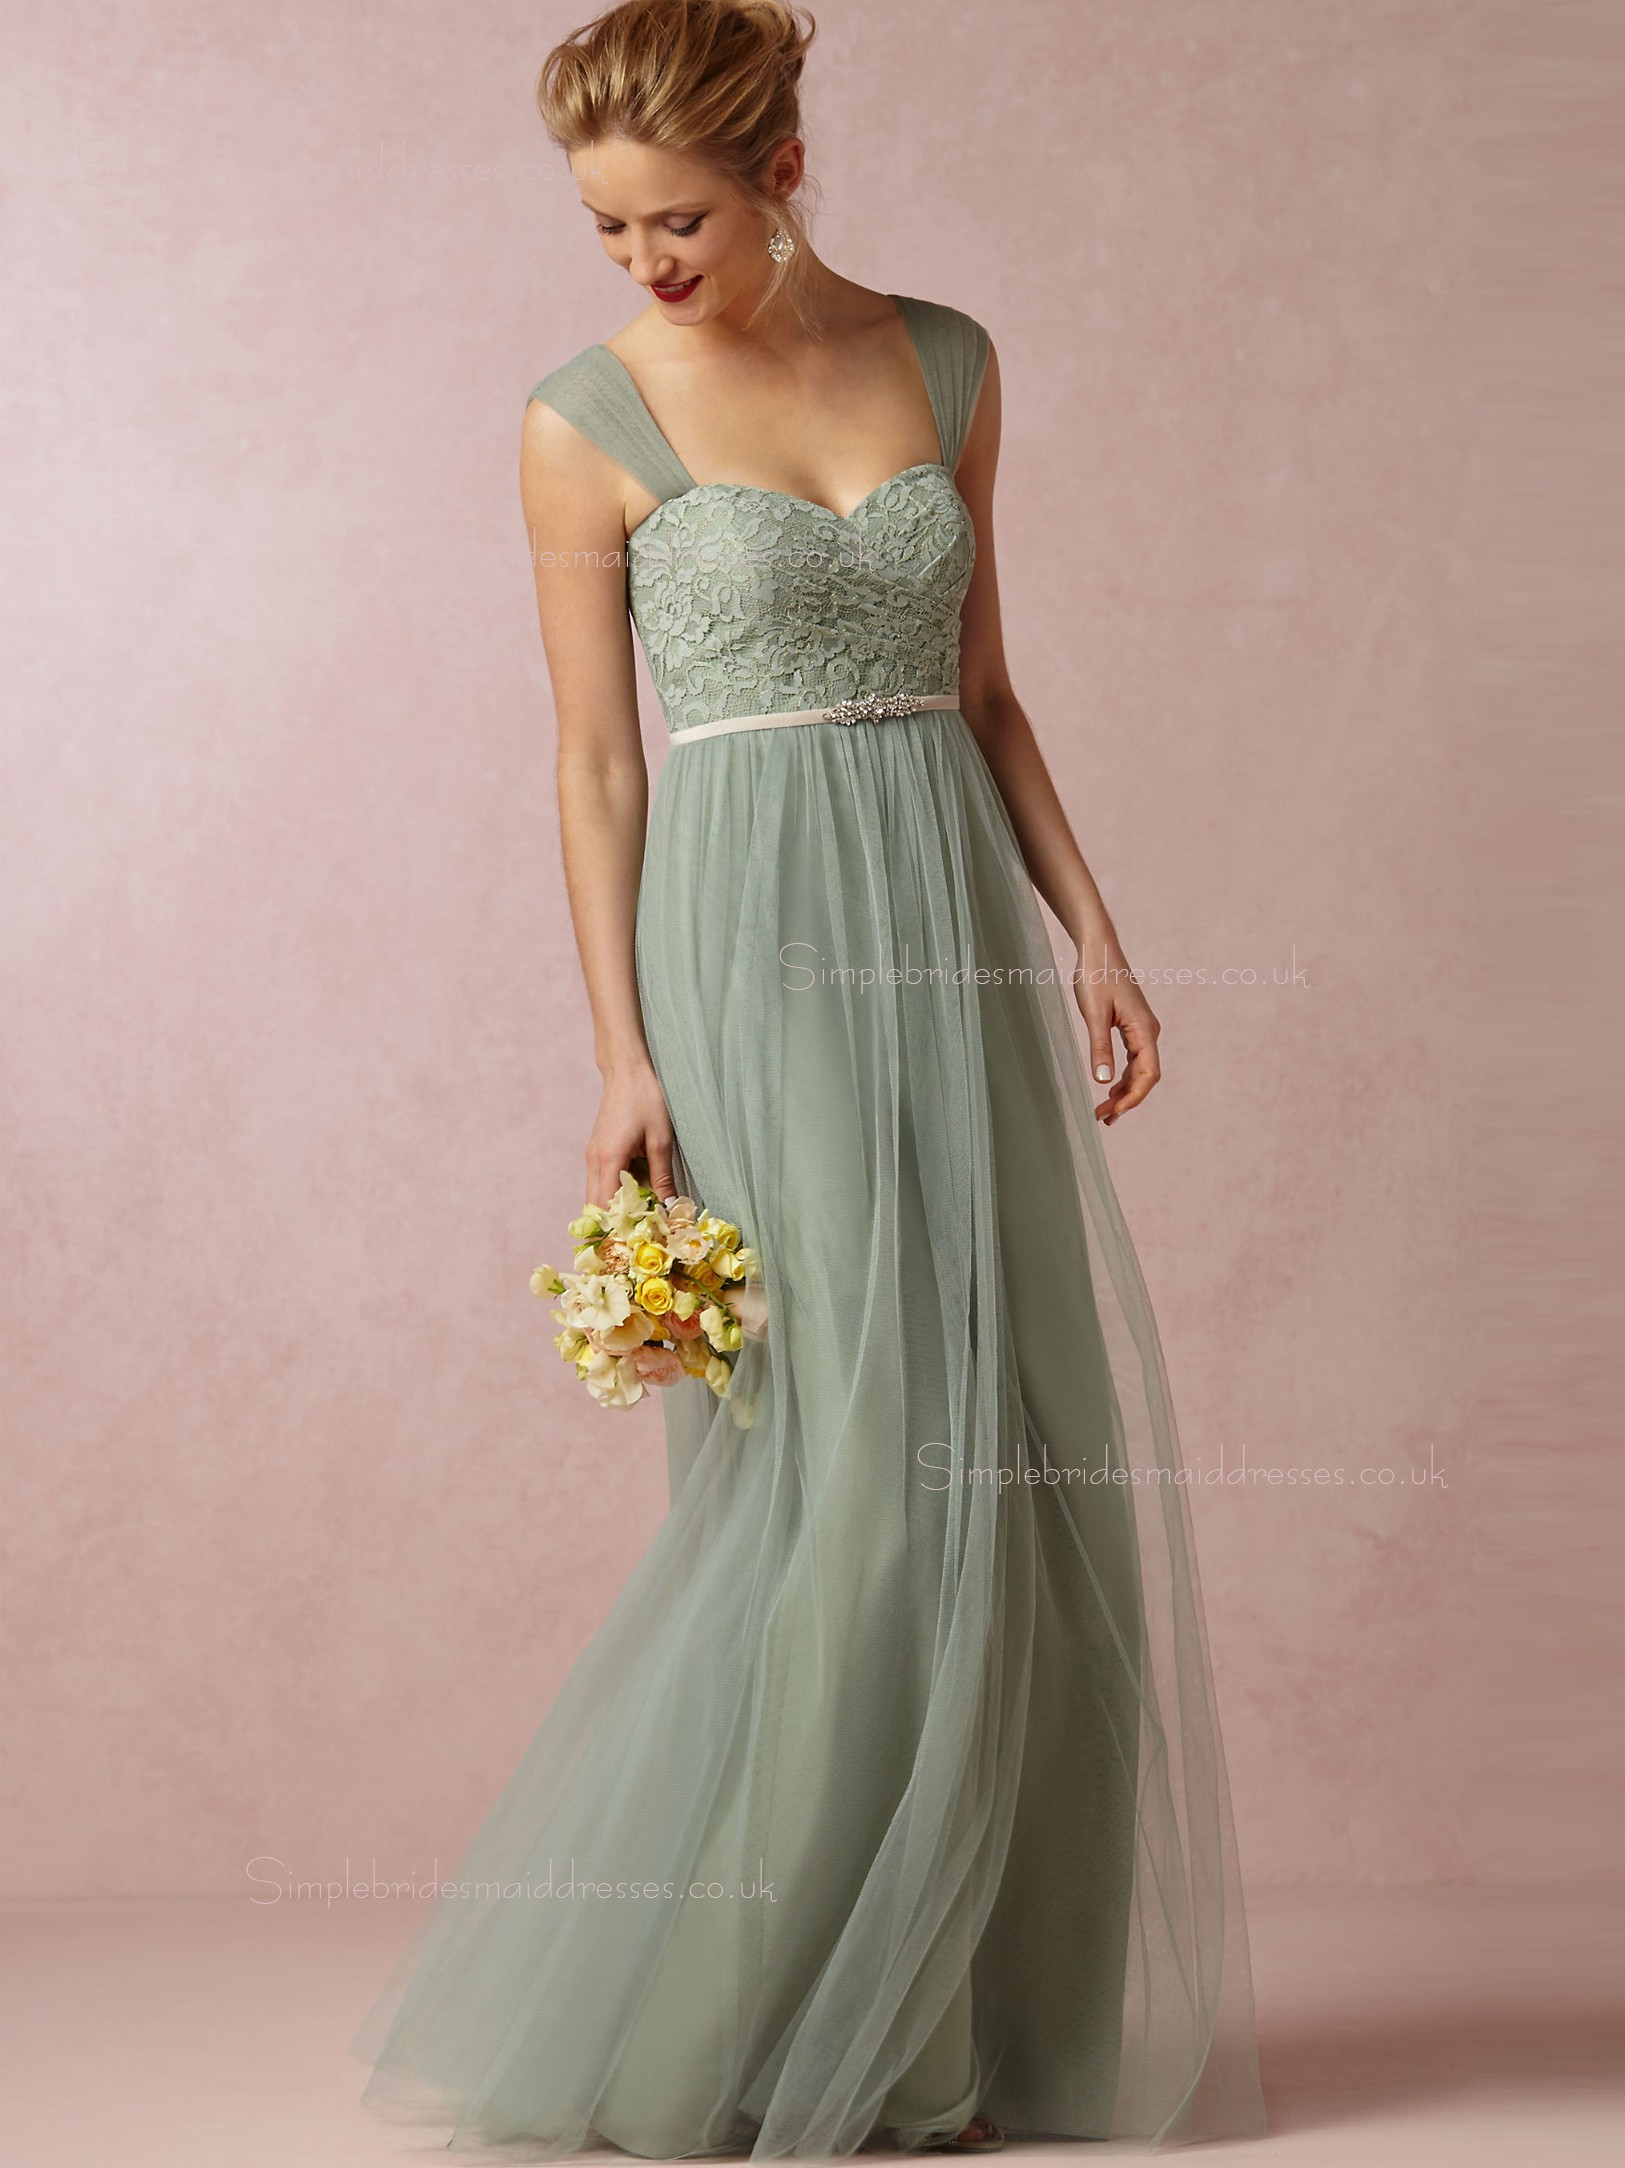 Shop custom green floor length a line bridesmaid dresses for 899 custom green floor length a line bridesmaid dresses ombrellifo Image collections